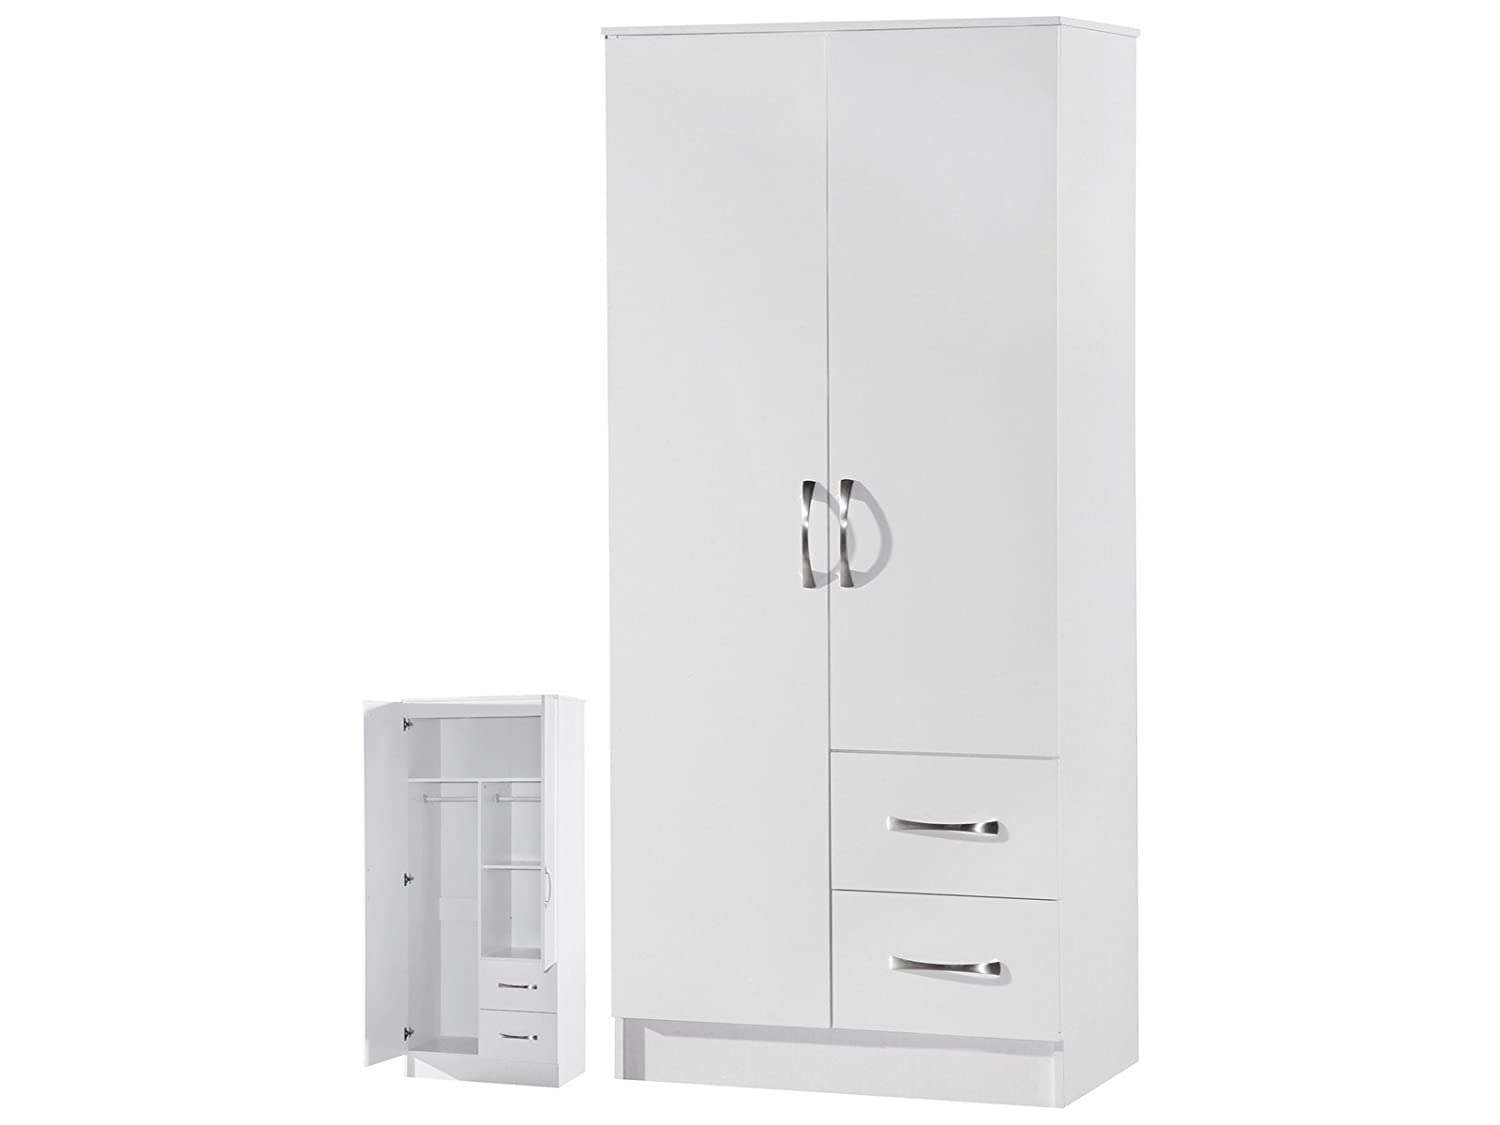 MARINA 2 DOOR DOUBLE COMBINATION WARDROBE ULTRA HIGH GLOSS QUALITY UNITS (WHITE GLOSS & WHITE ASH) by MARINA RANGE ARKFW